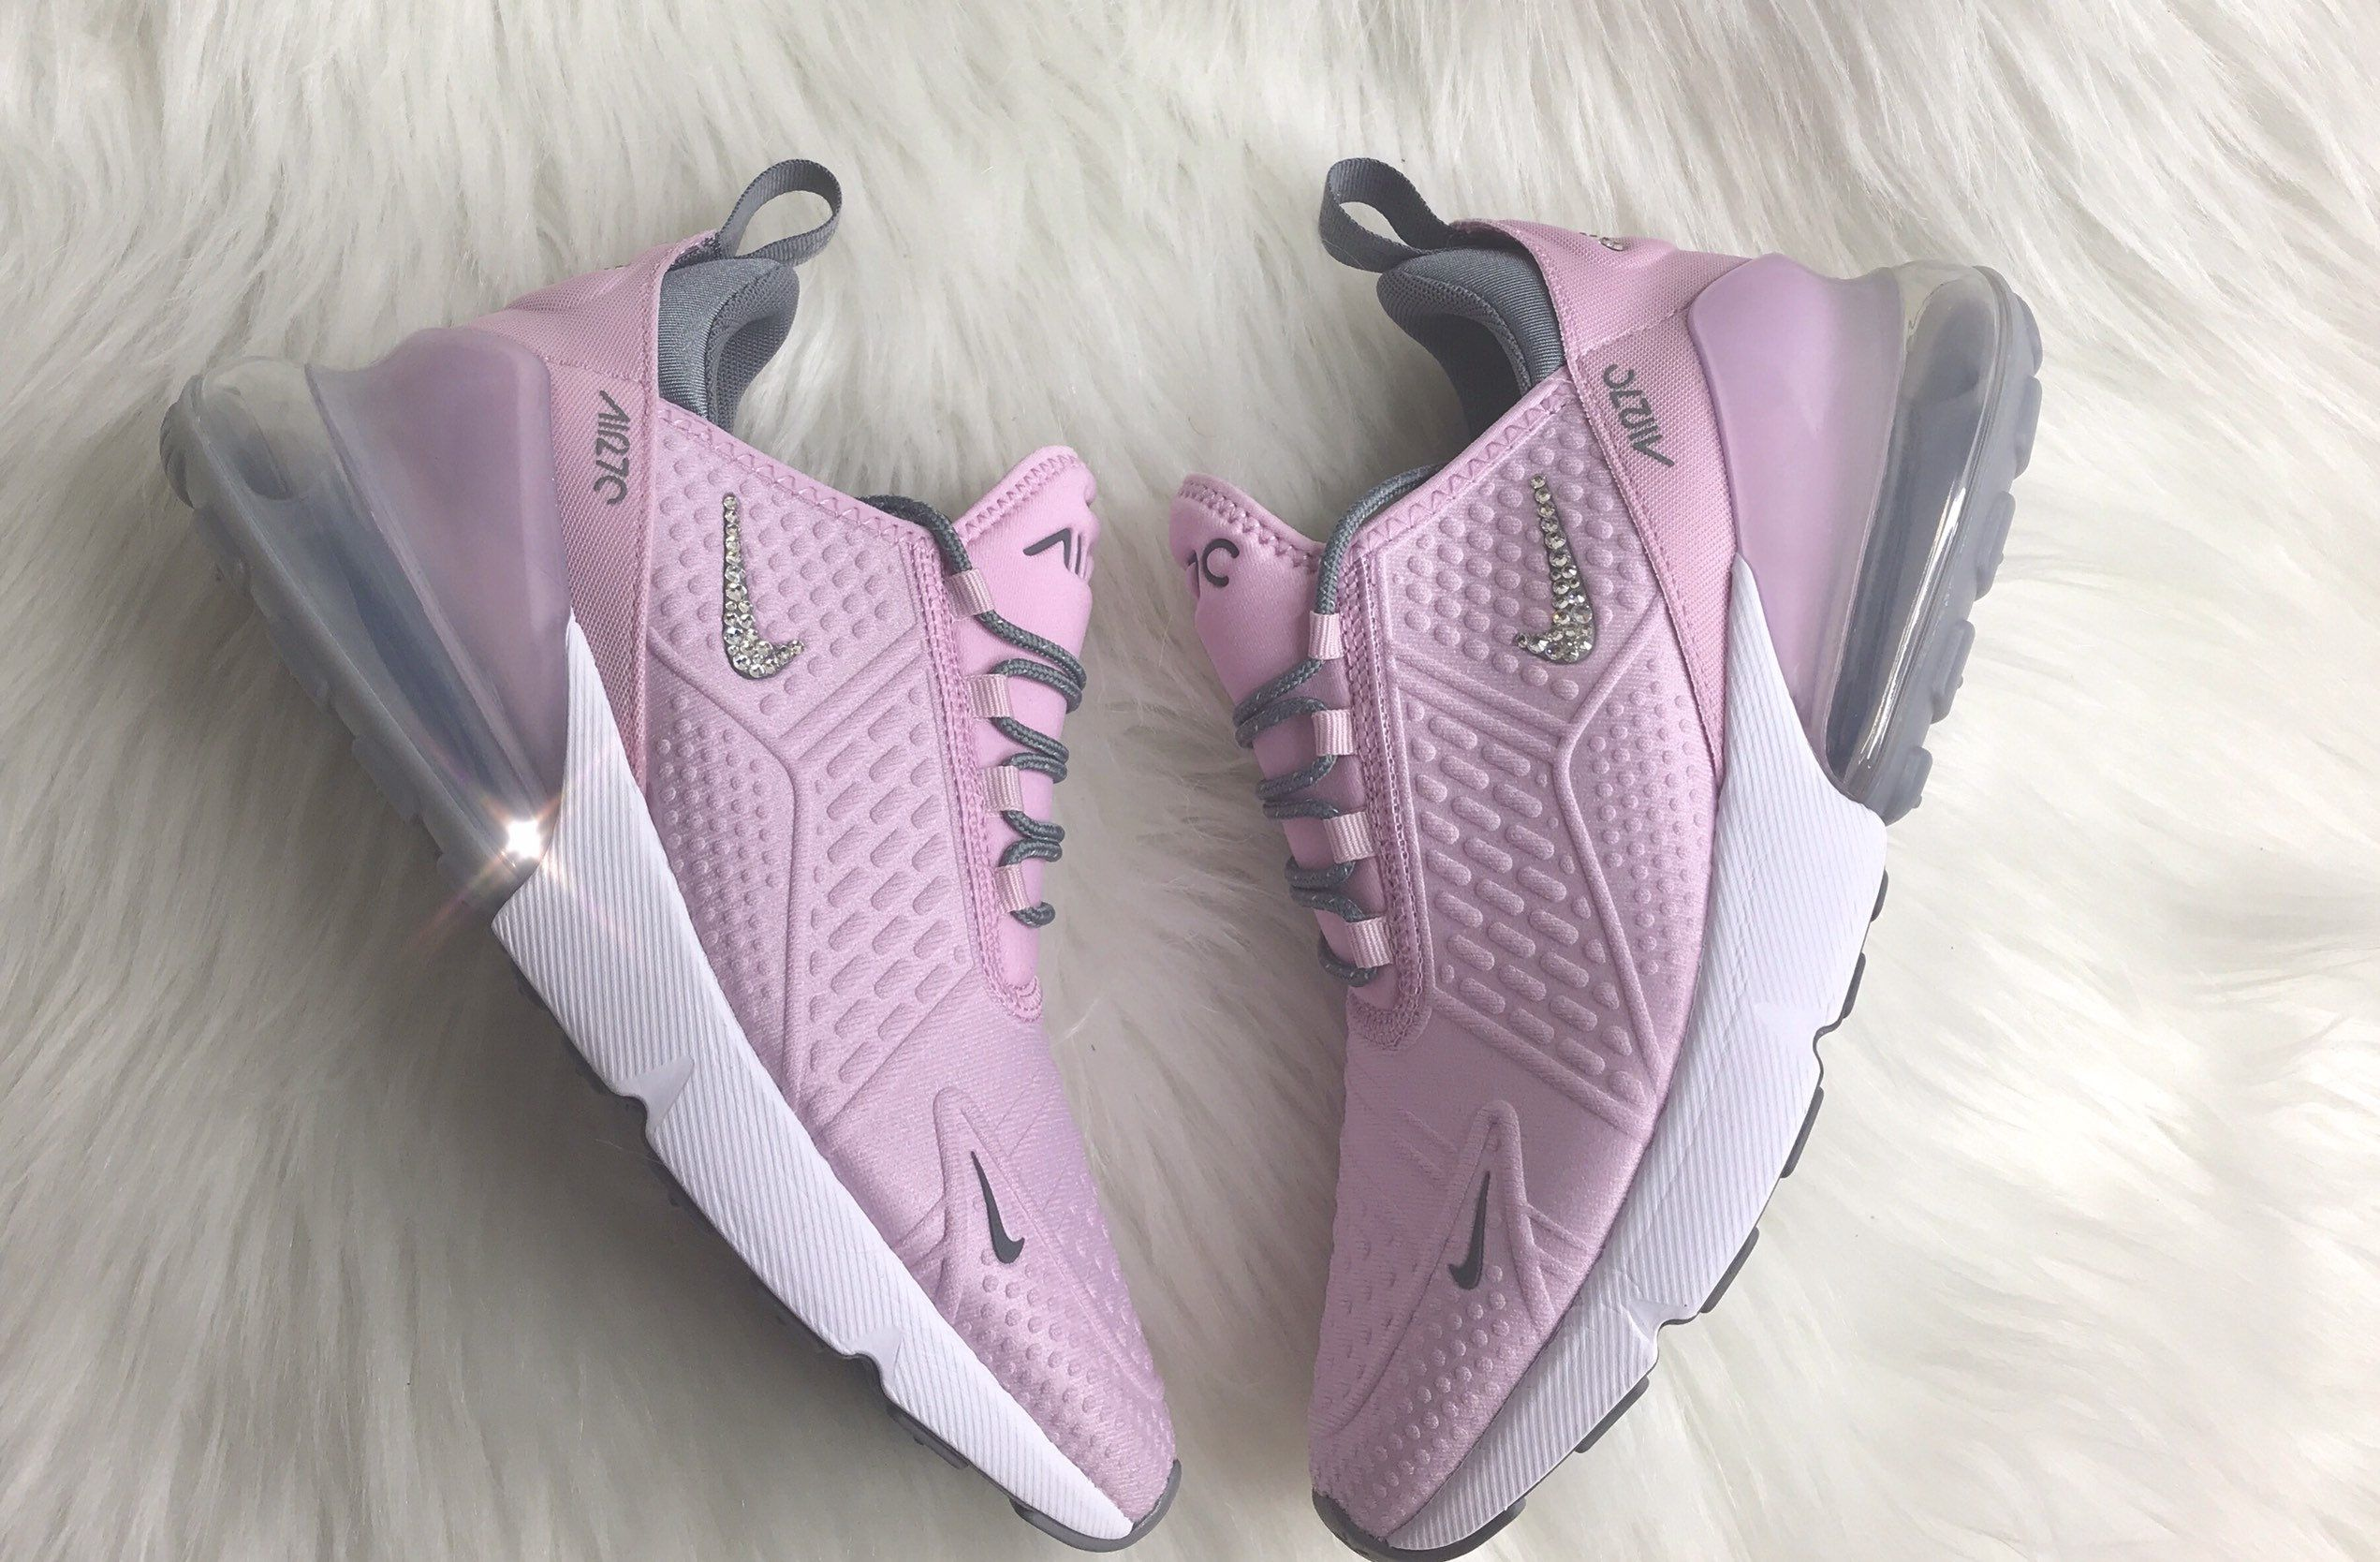 Pink BLING Nike Air Max 270 With Swarovski Crystals Women's